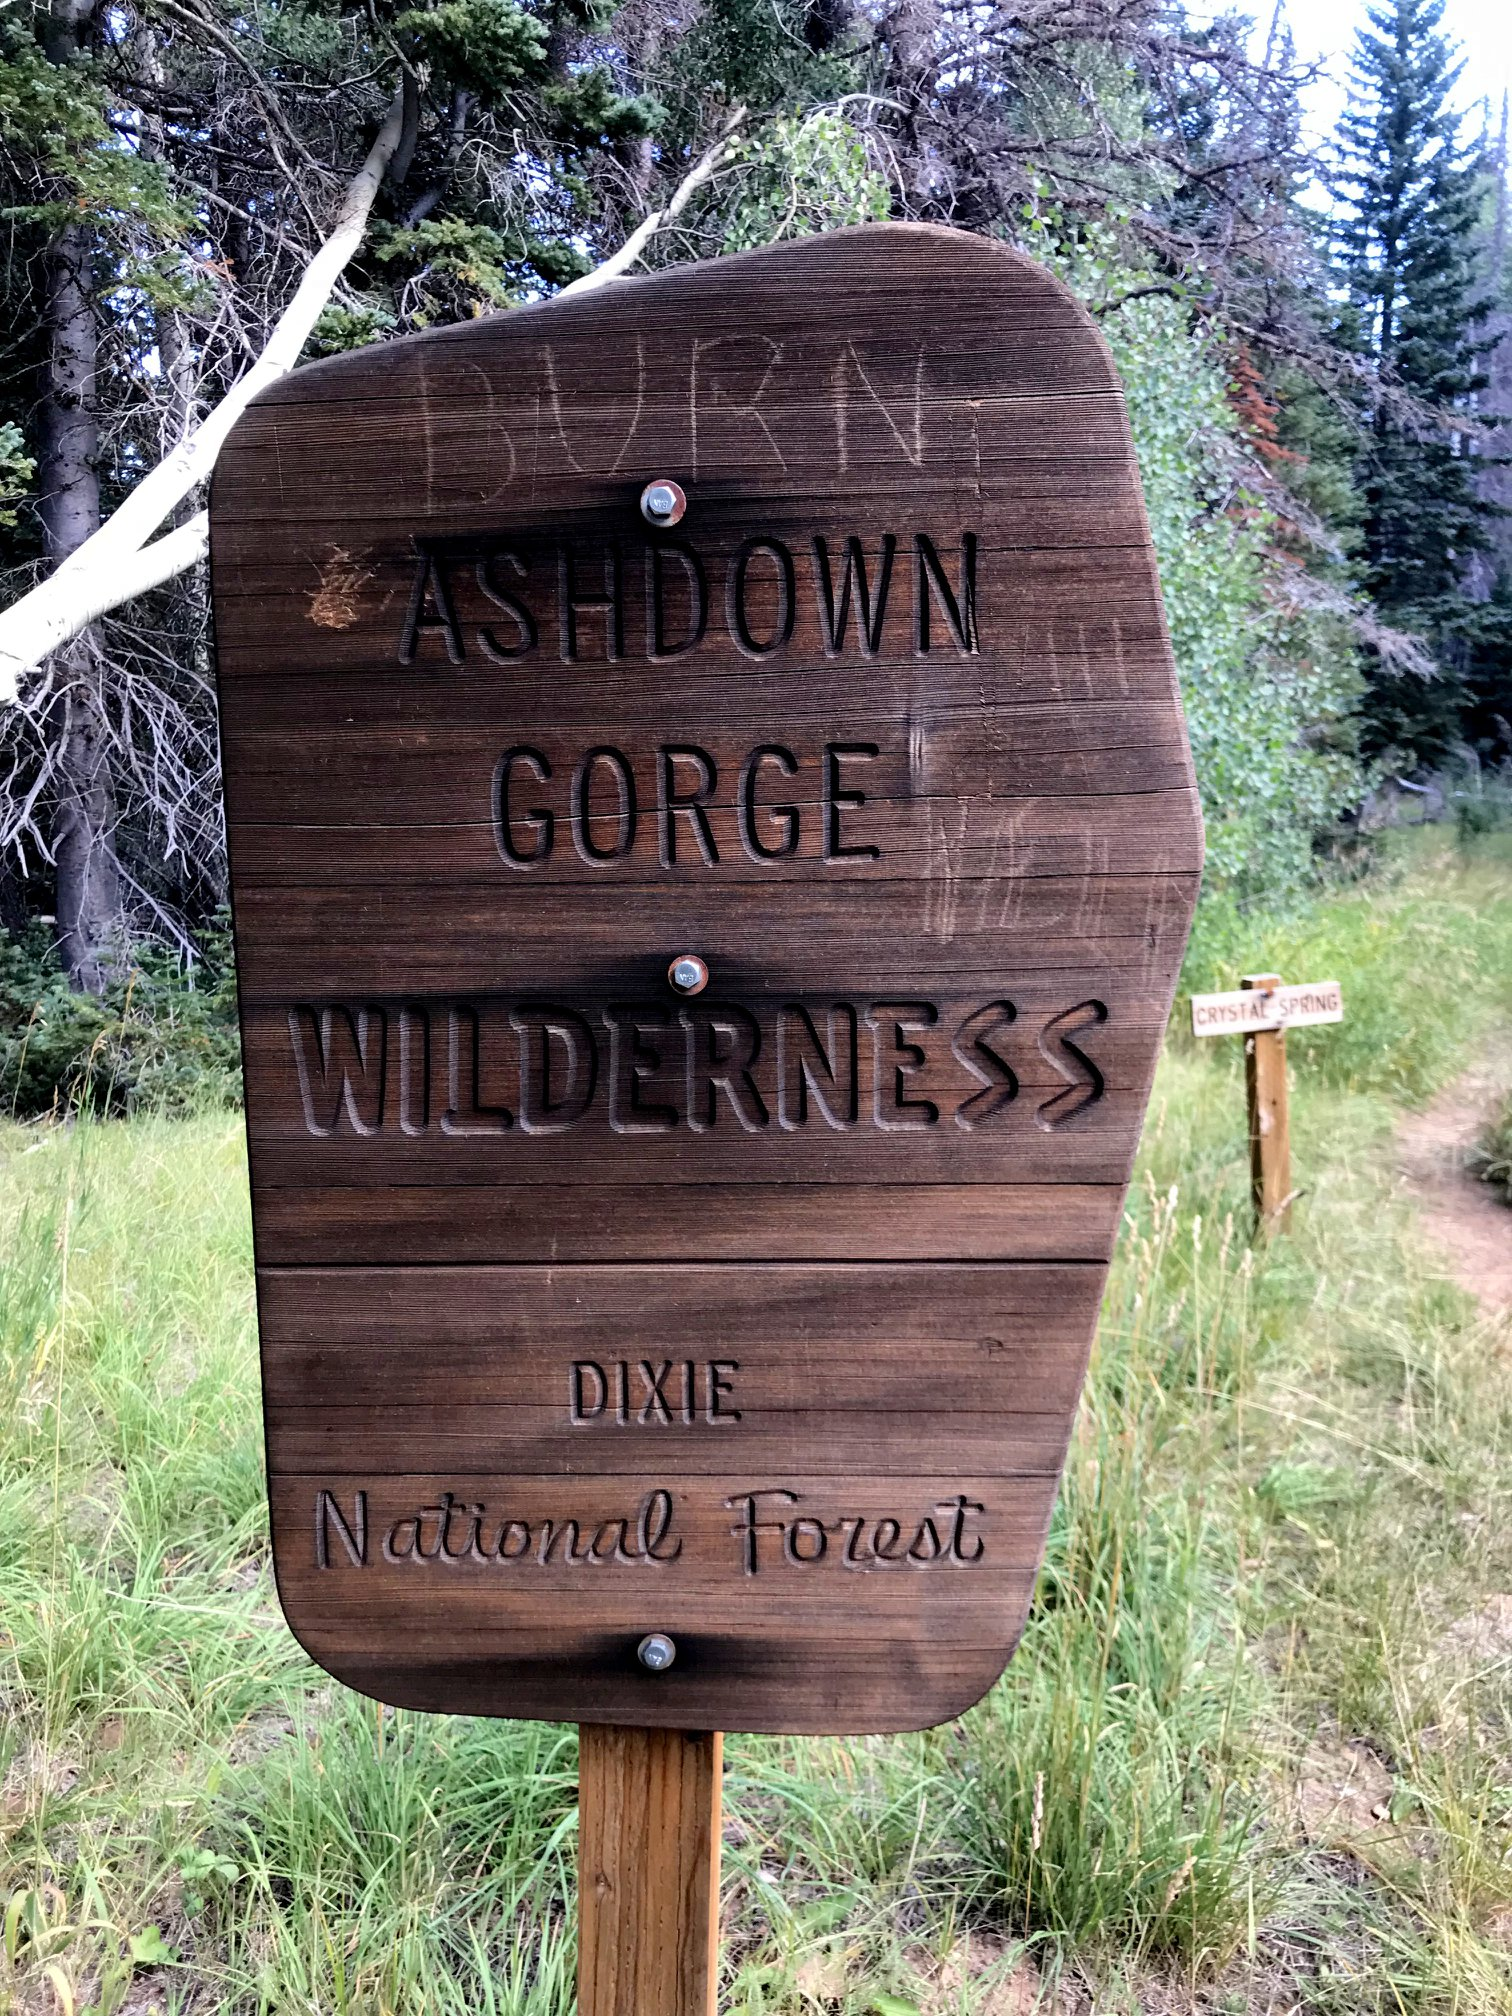 Someone felt the need to deface the sign after last years wild fires